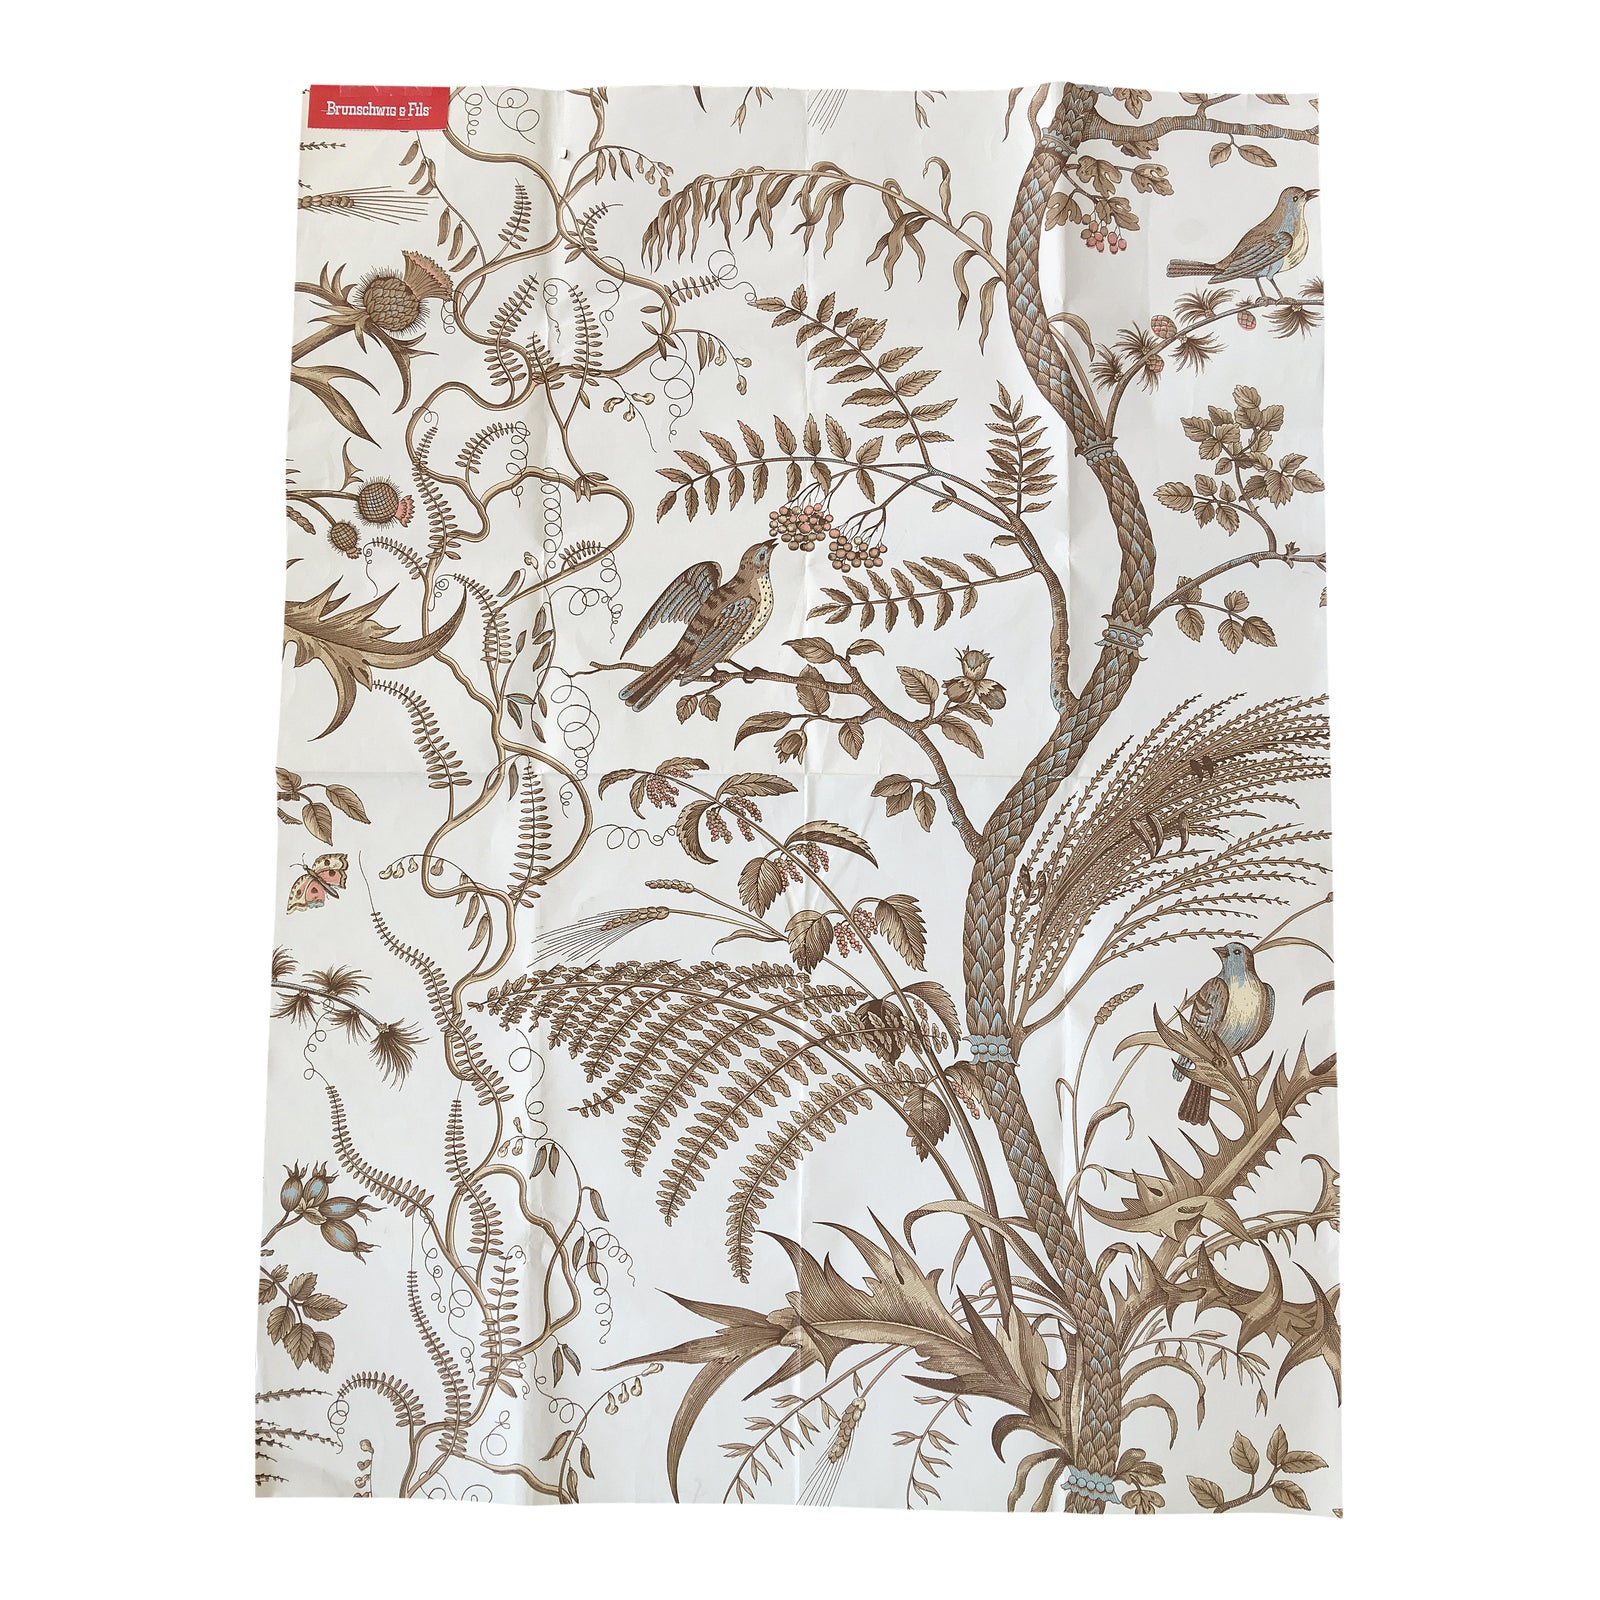 Brunschwig & Fils Iconic Bird And Thistle Pattern Wallpaper In